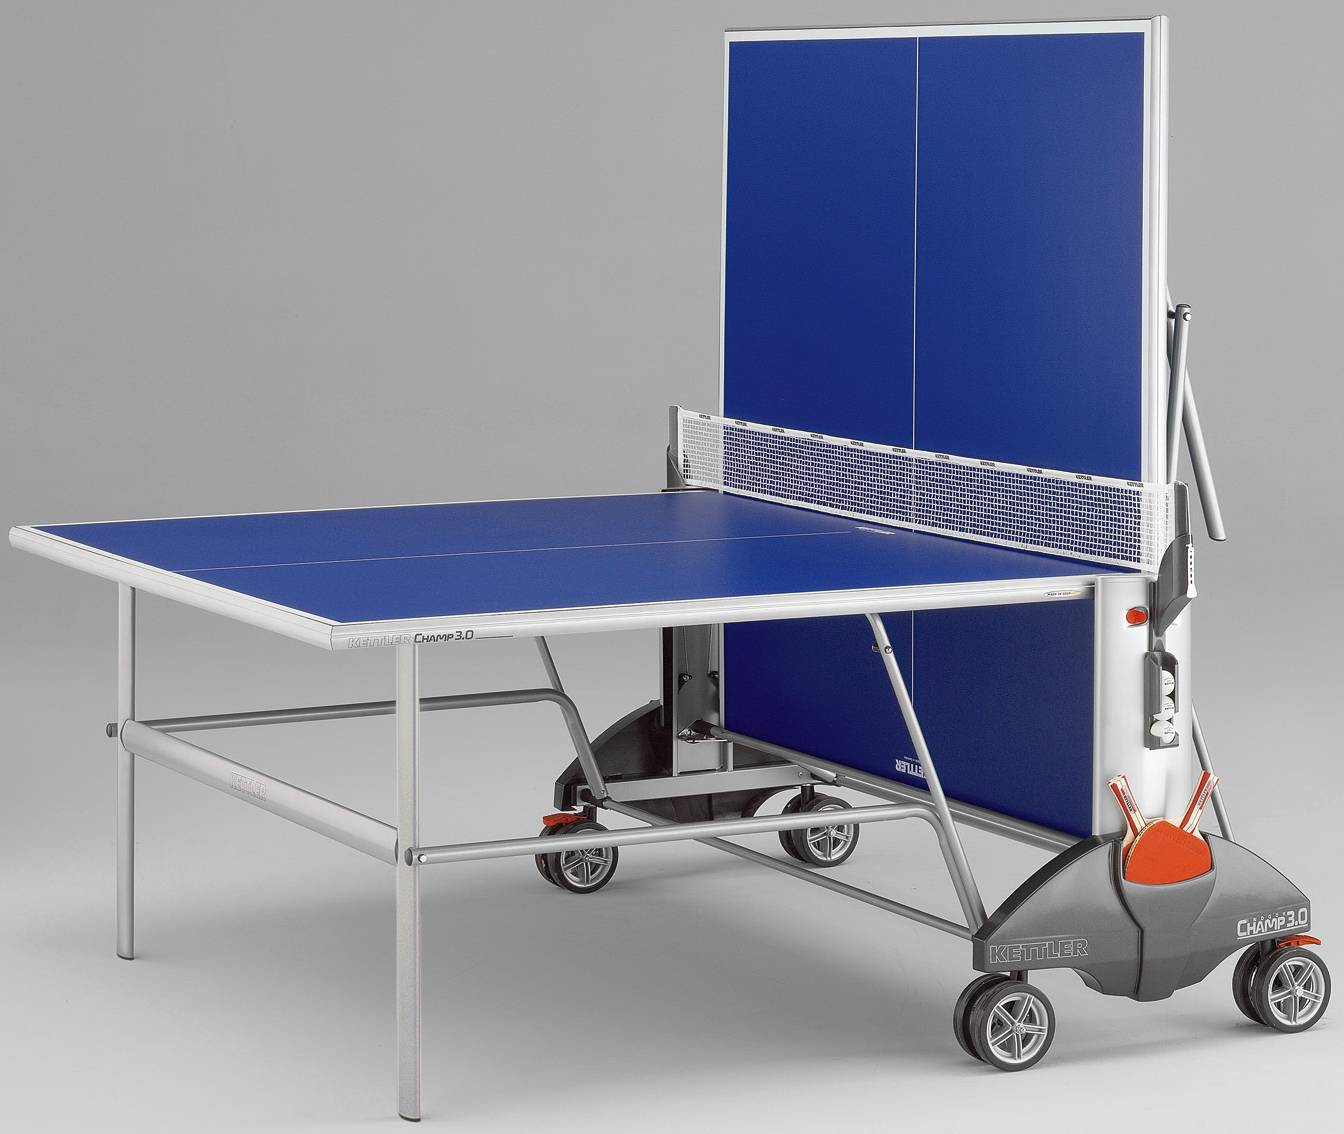 kettler champ 3 0 outdoor ping pong table. Black Bedroom Furniture Sets. Home Design Ideas